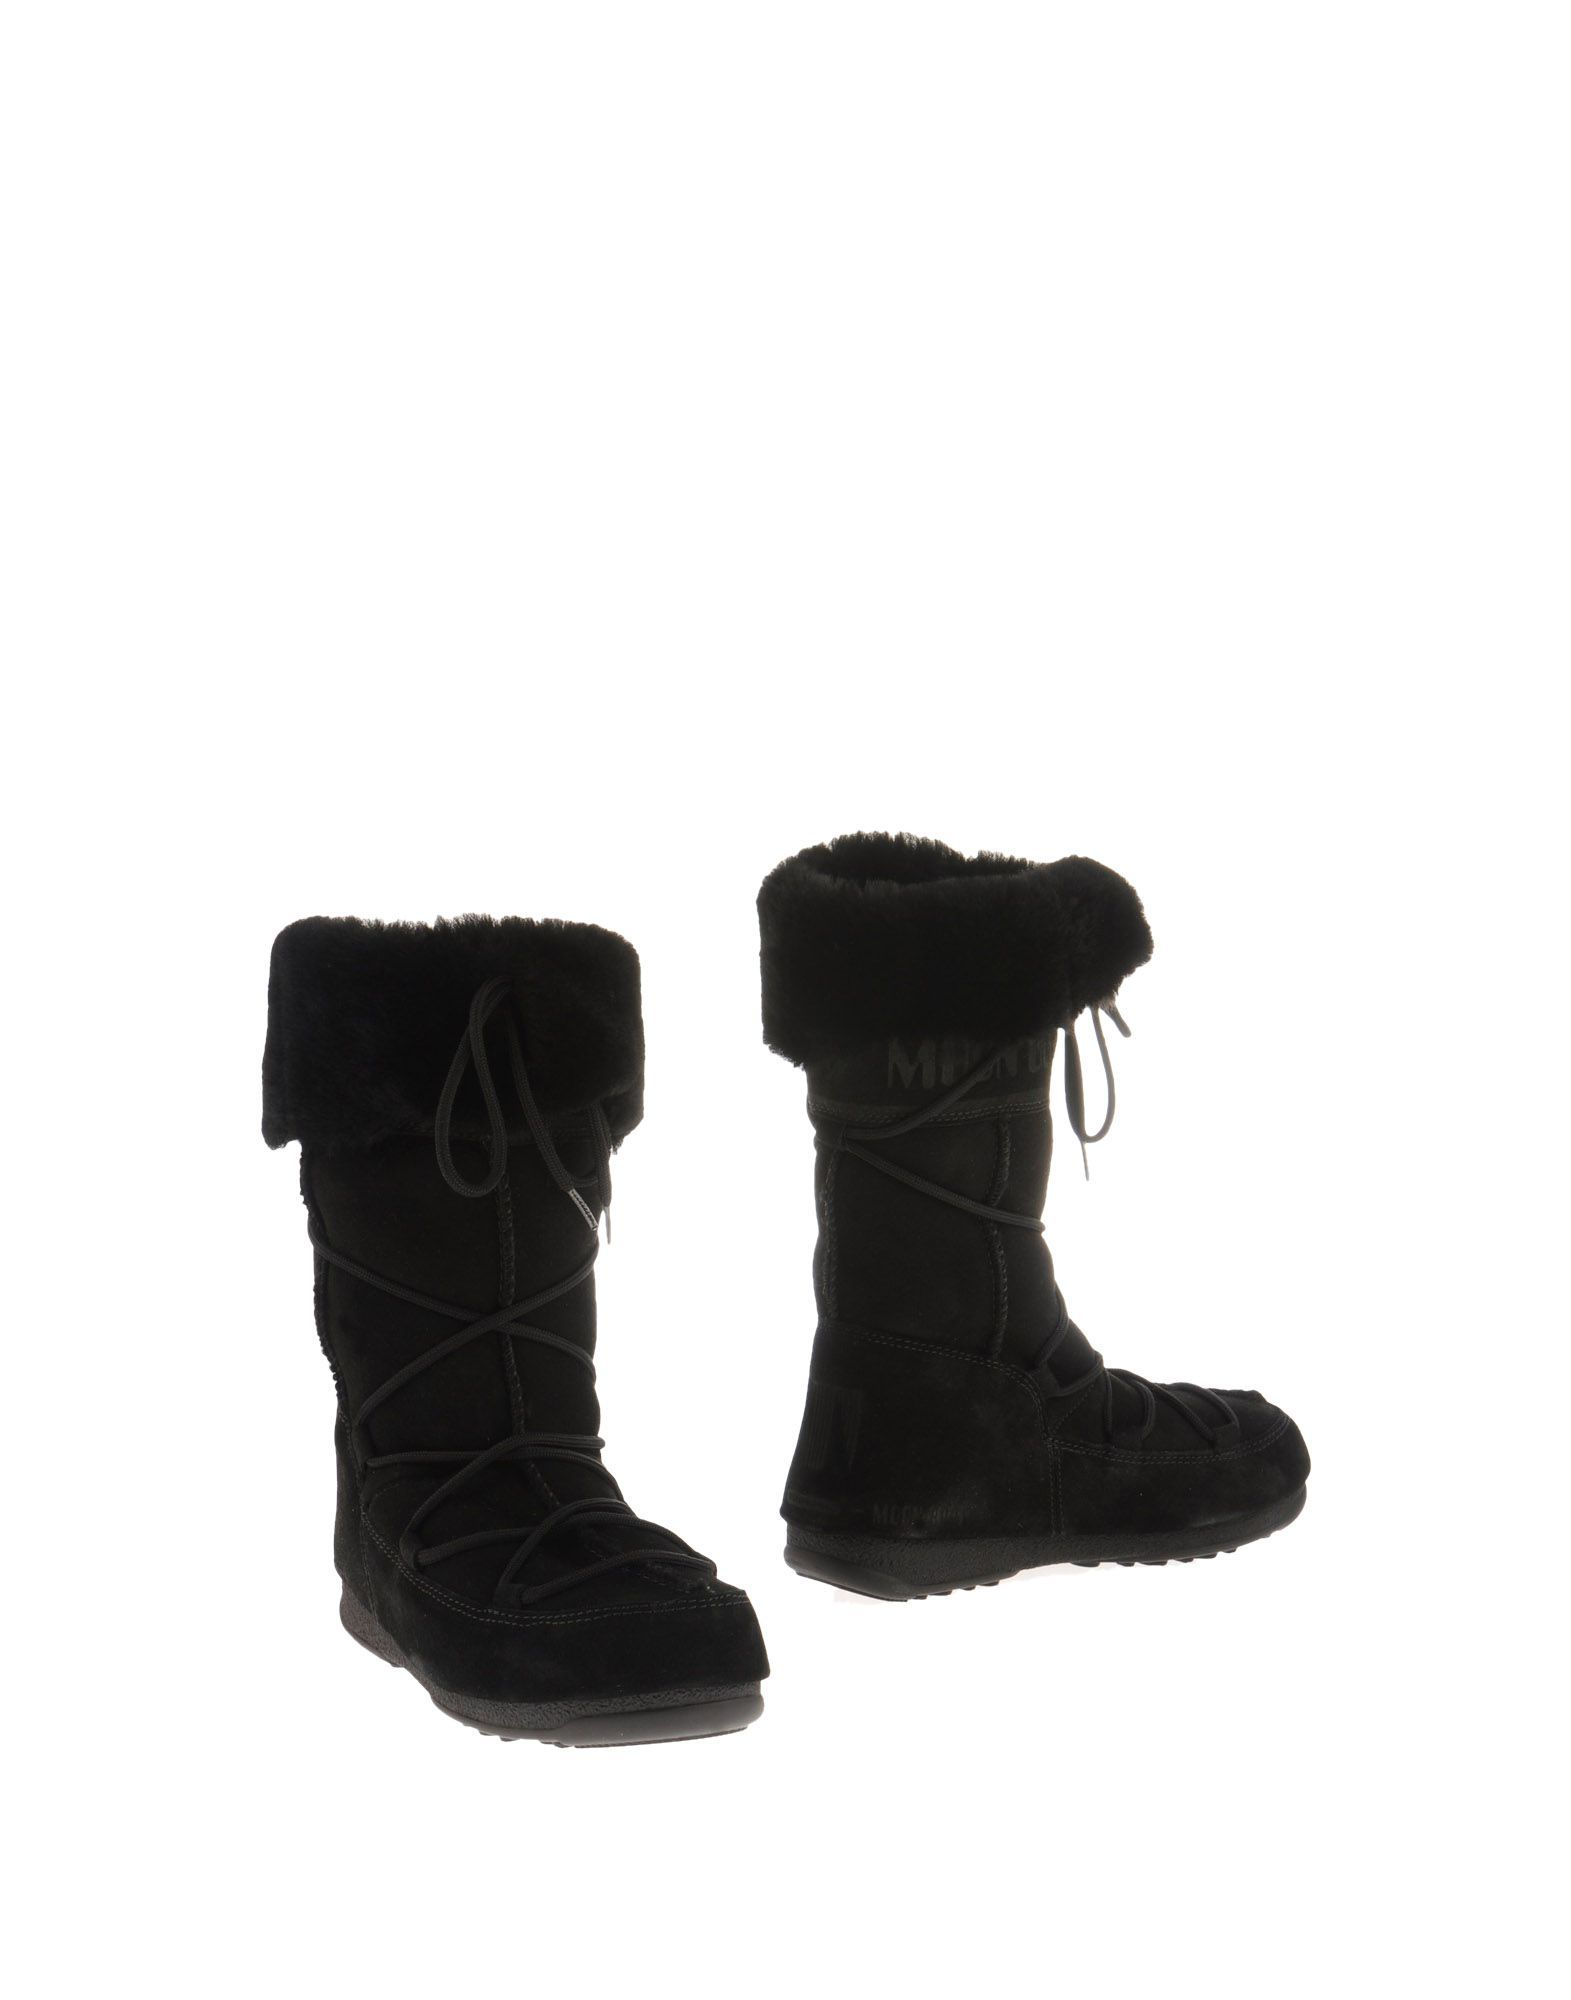 Moon Boot Black Leather Lace Up Boots